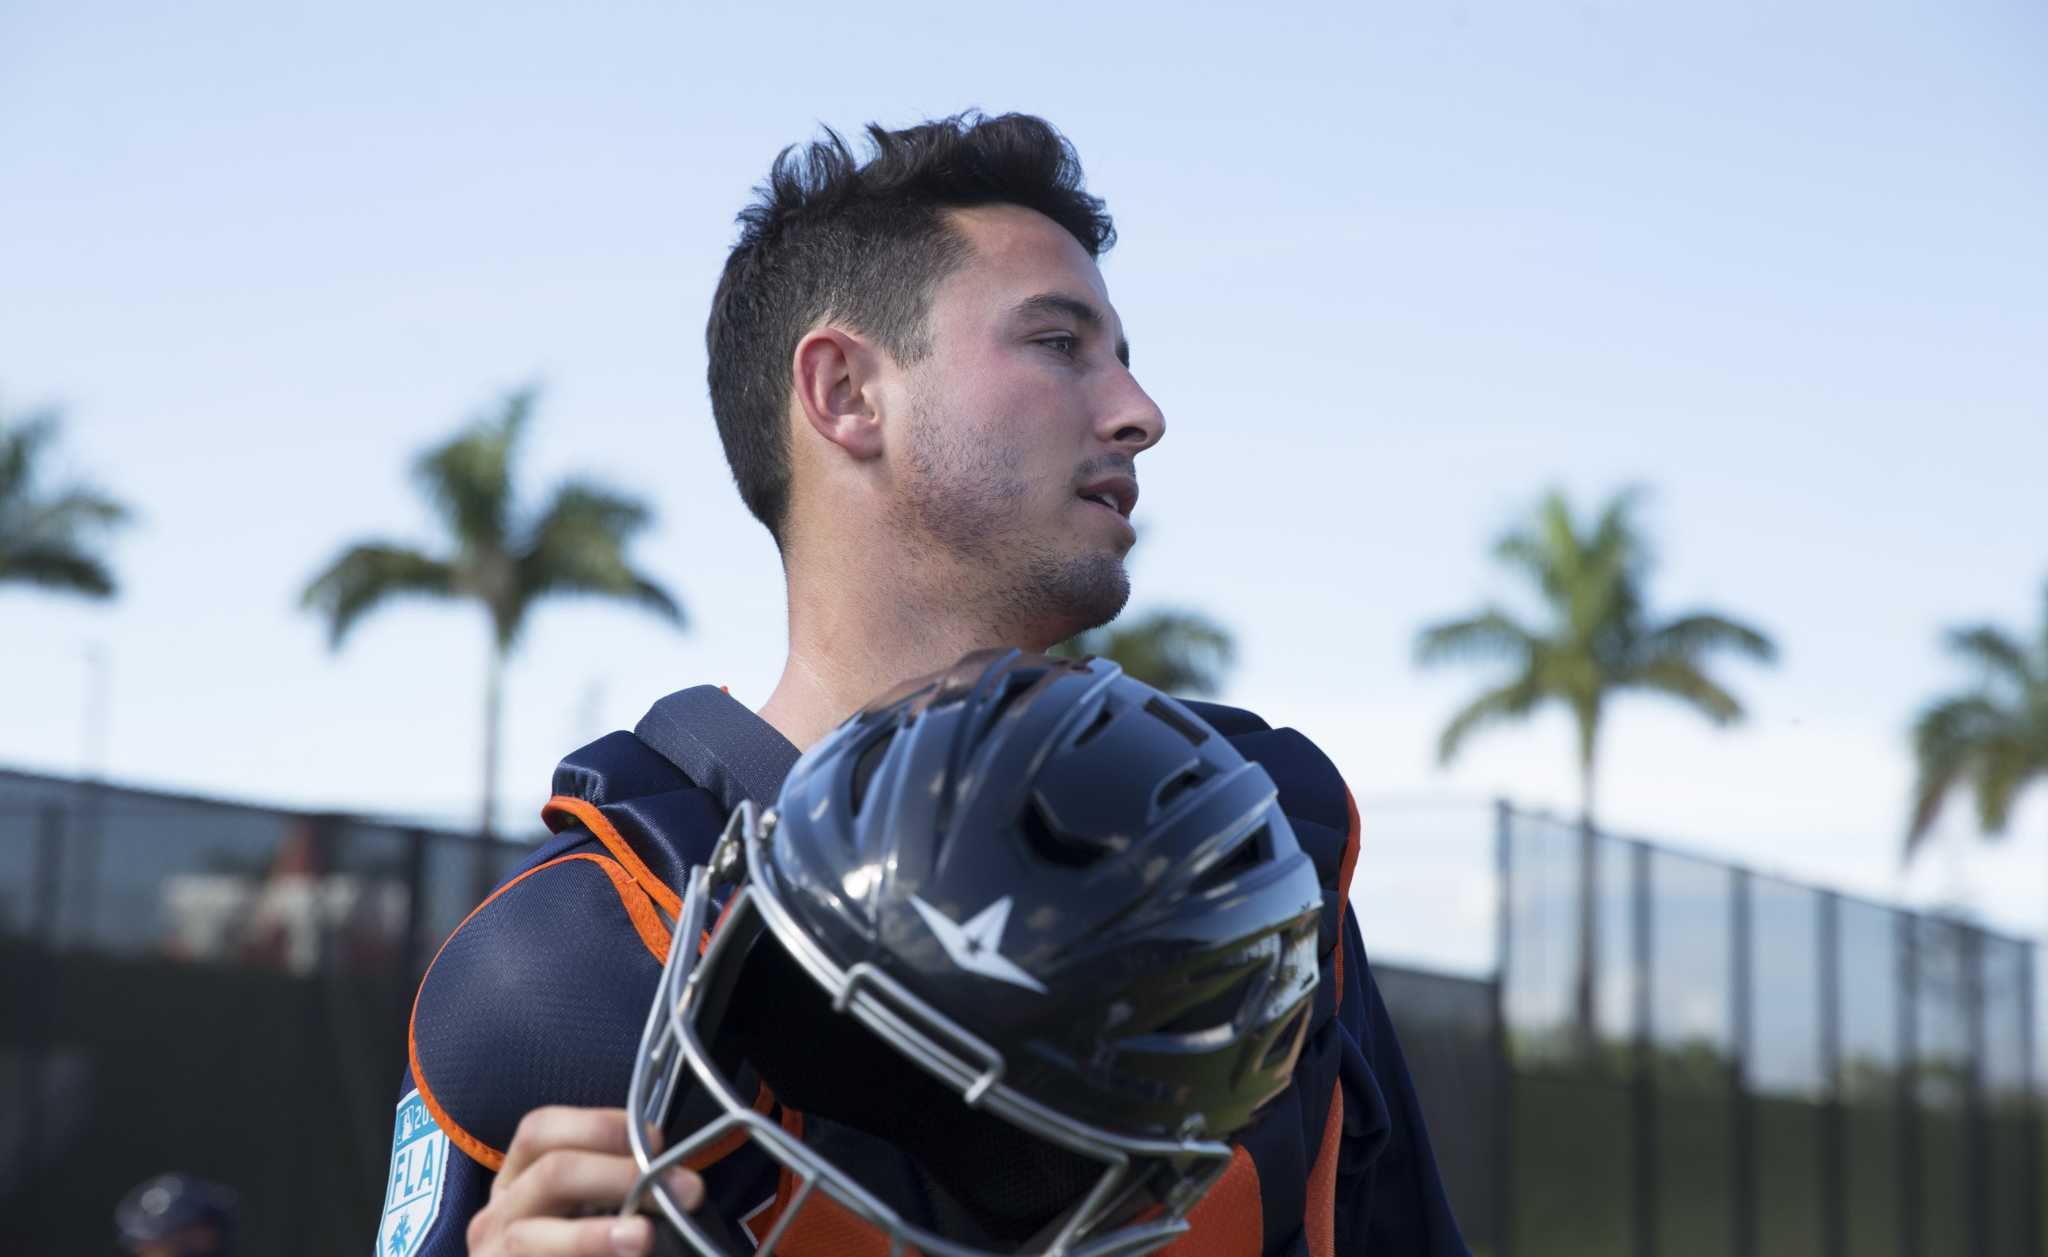 Garrett Stubbs feeds ambition of catching for Astros